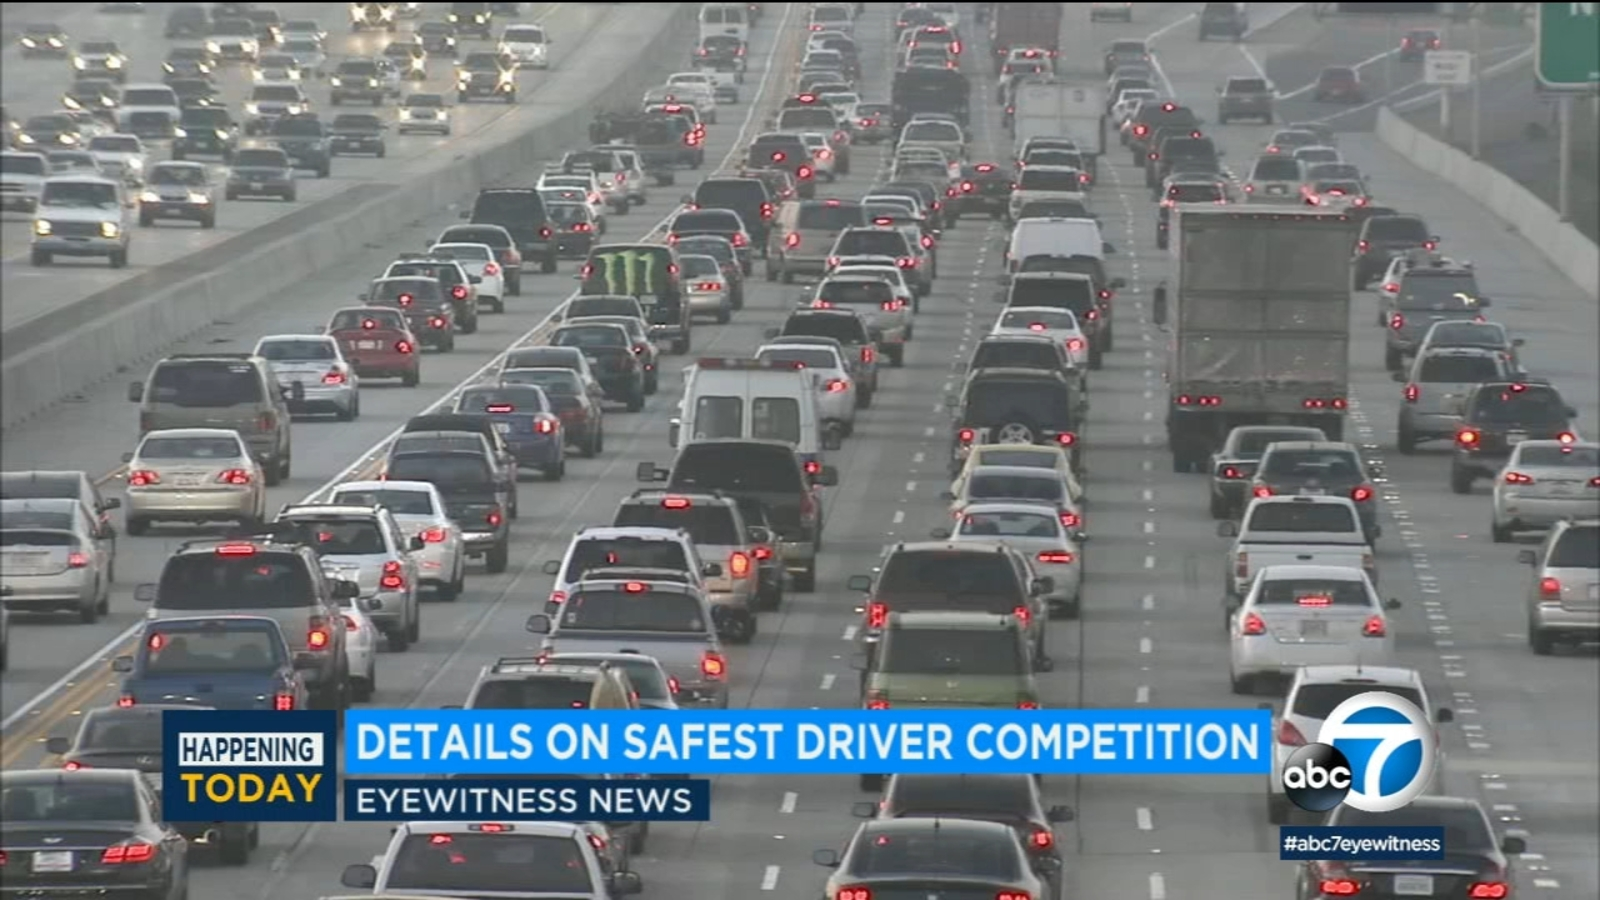 l.a. holding $70,000 competition to find safest driver